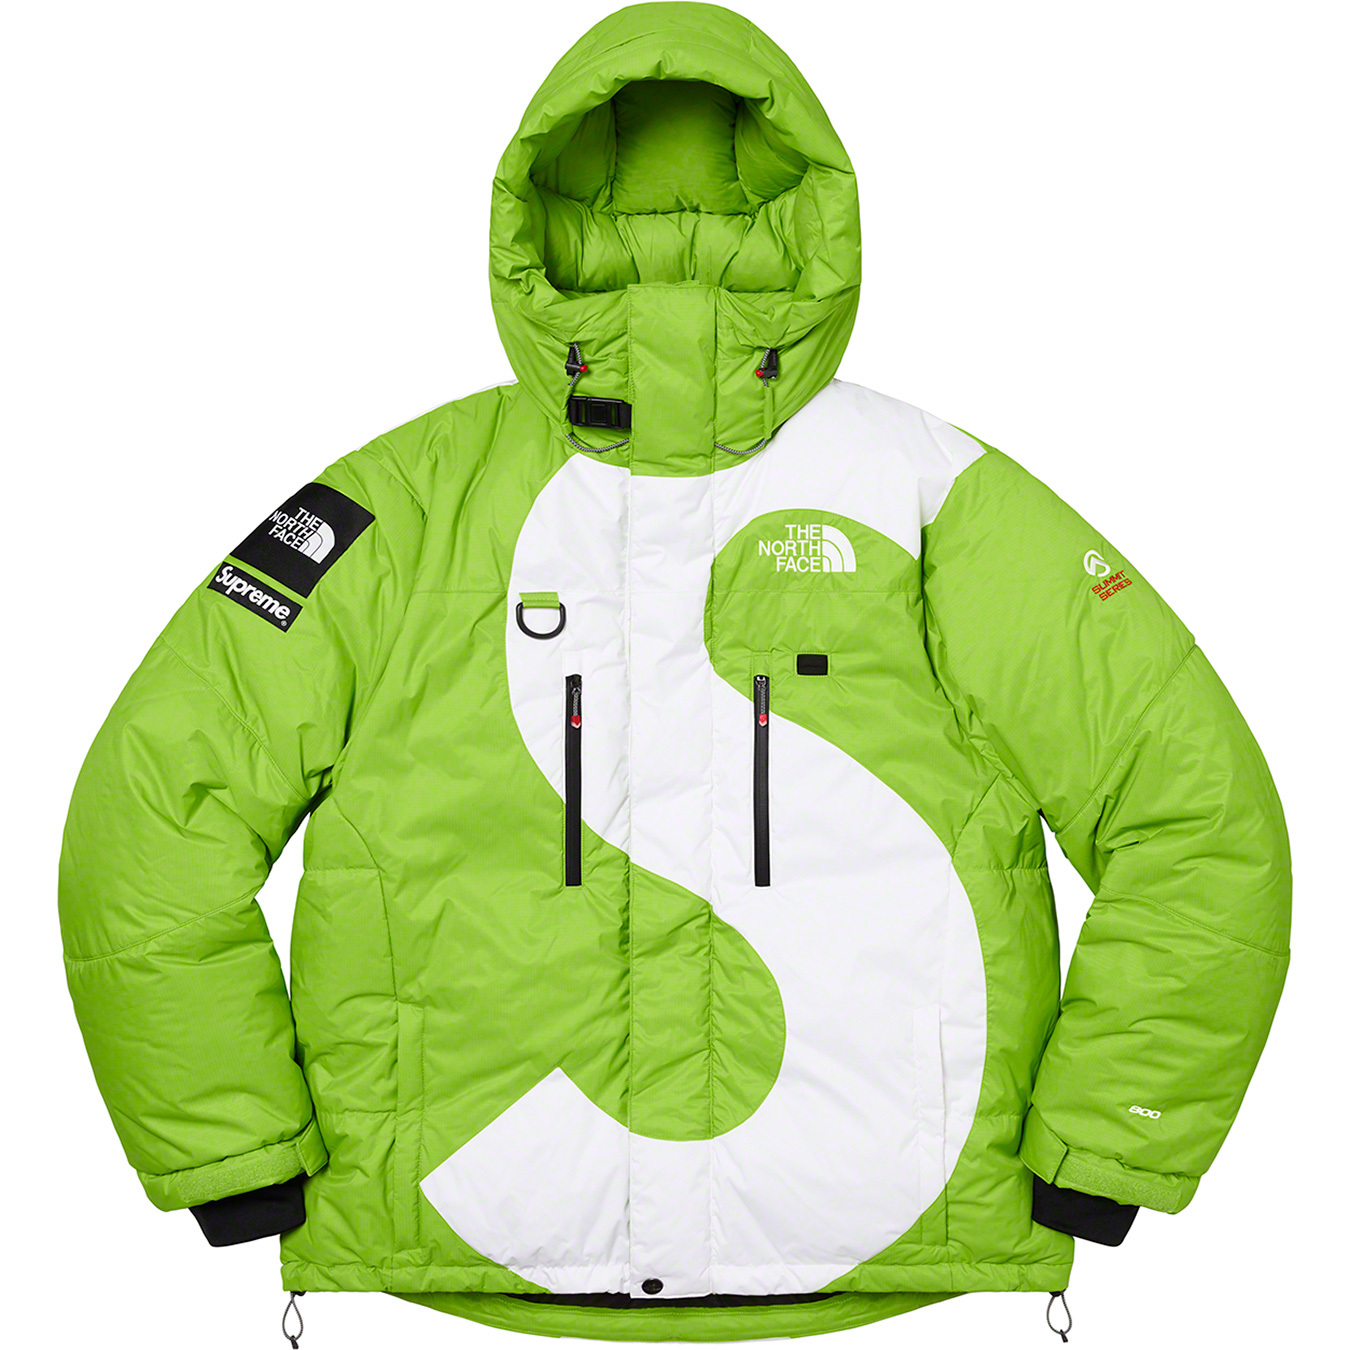 supreme-the-north-face-20aw-20fw-s-logo-collaboration-release-20201031-week10-himalayan-parka